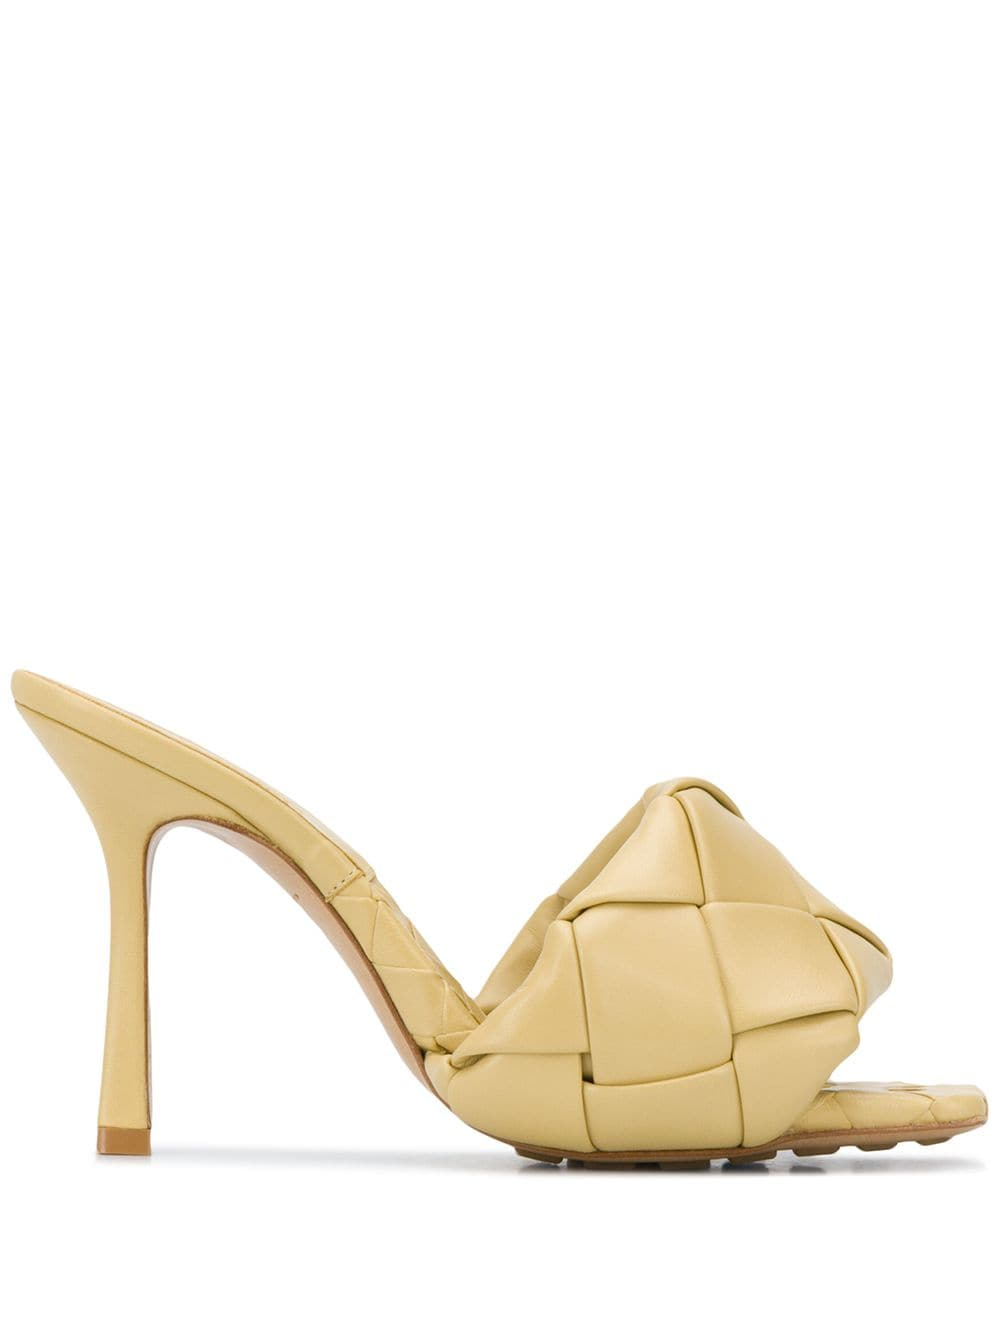 The Lido Sandal - Yellow